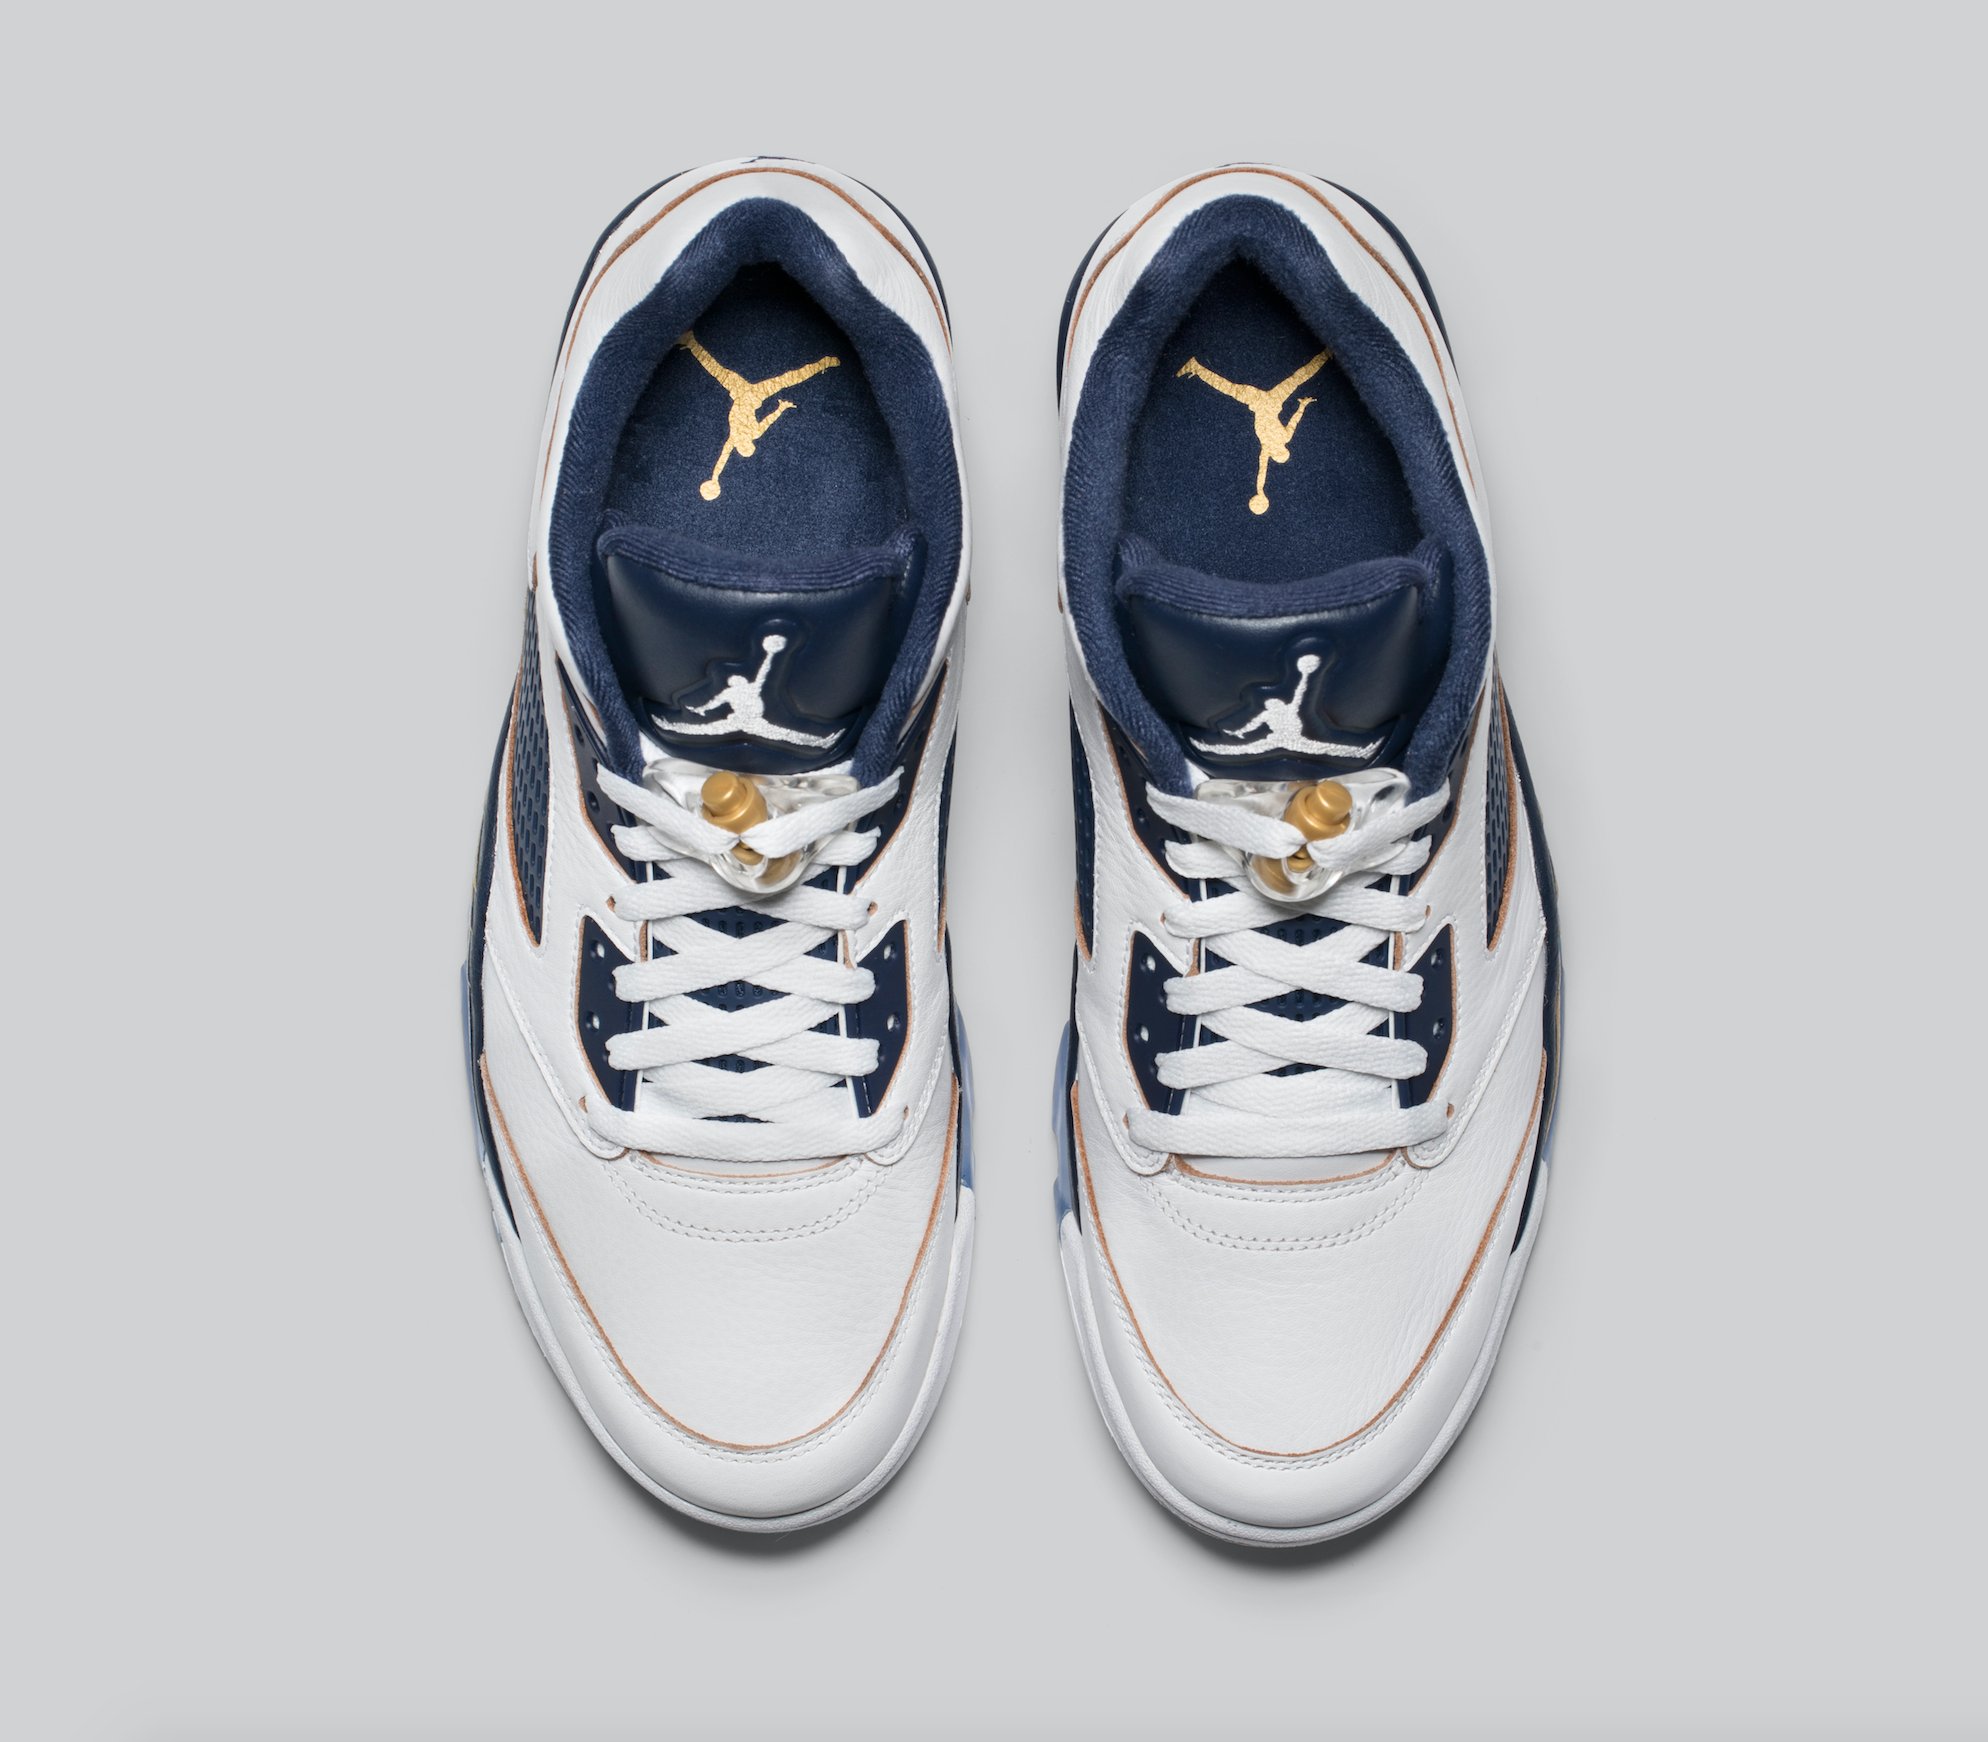 Release-Date-Air-Jordan-5-Low-Dunk-From-Above-03.png